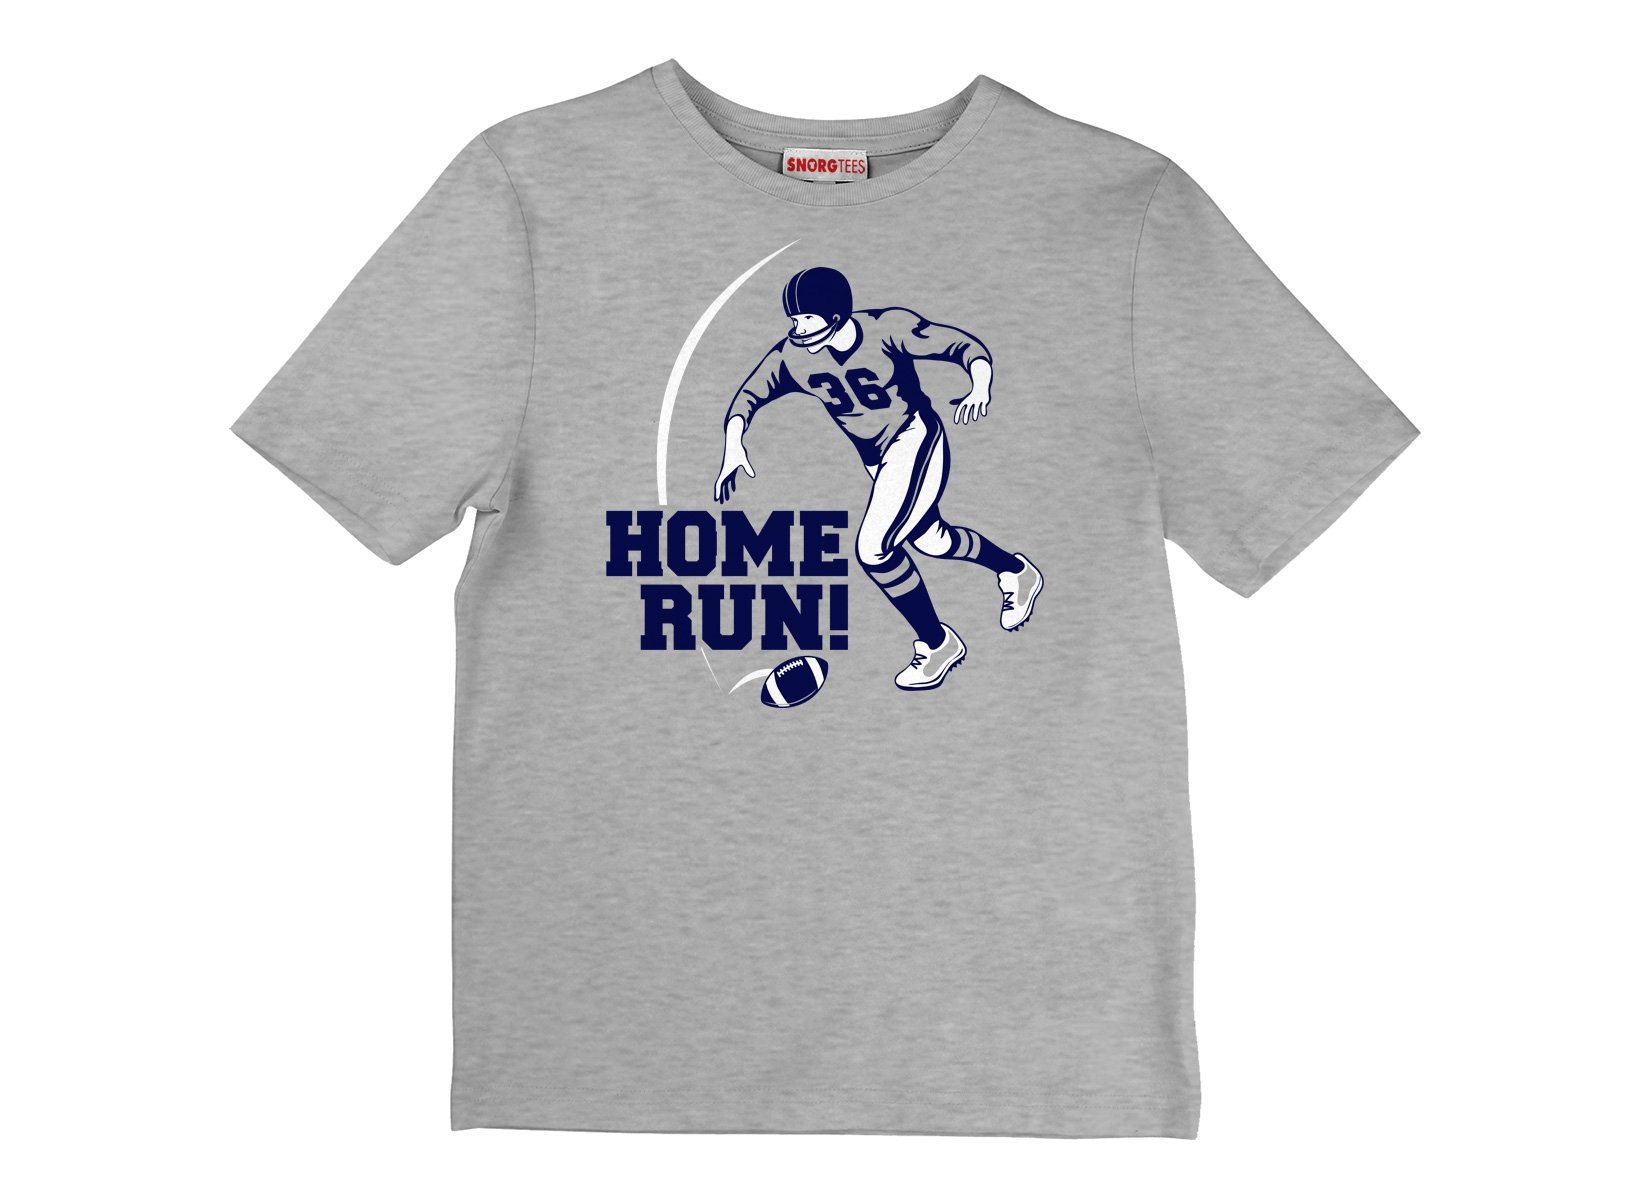 Home Run! on Kids T-Shirt